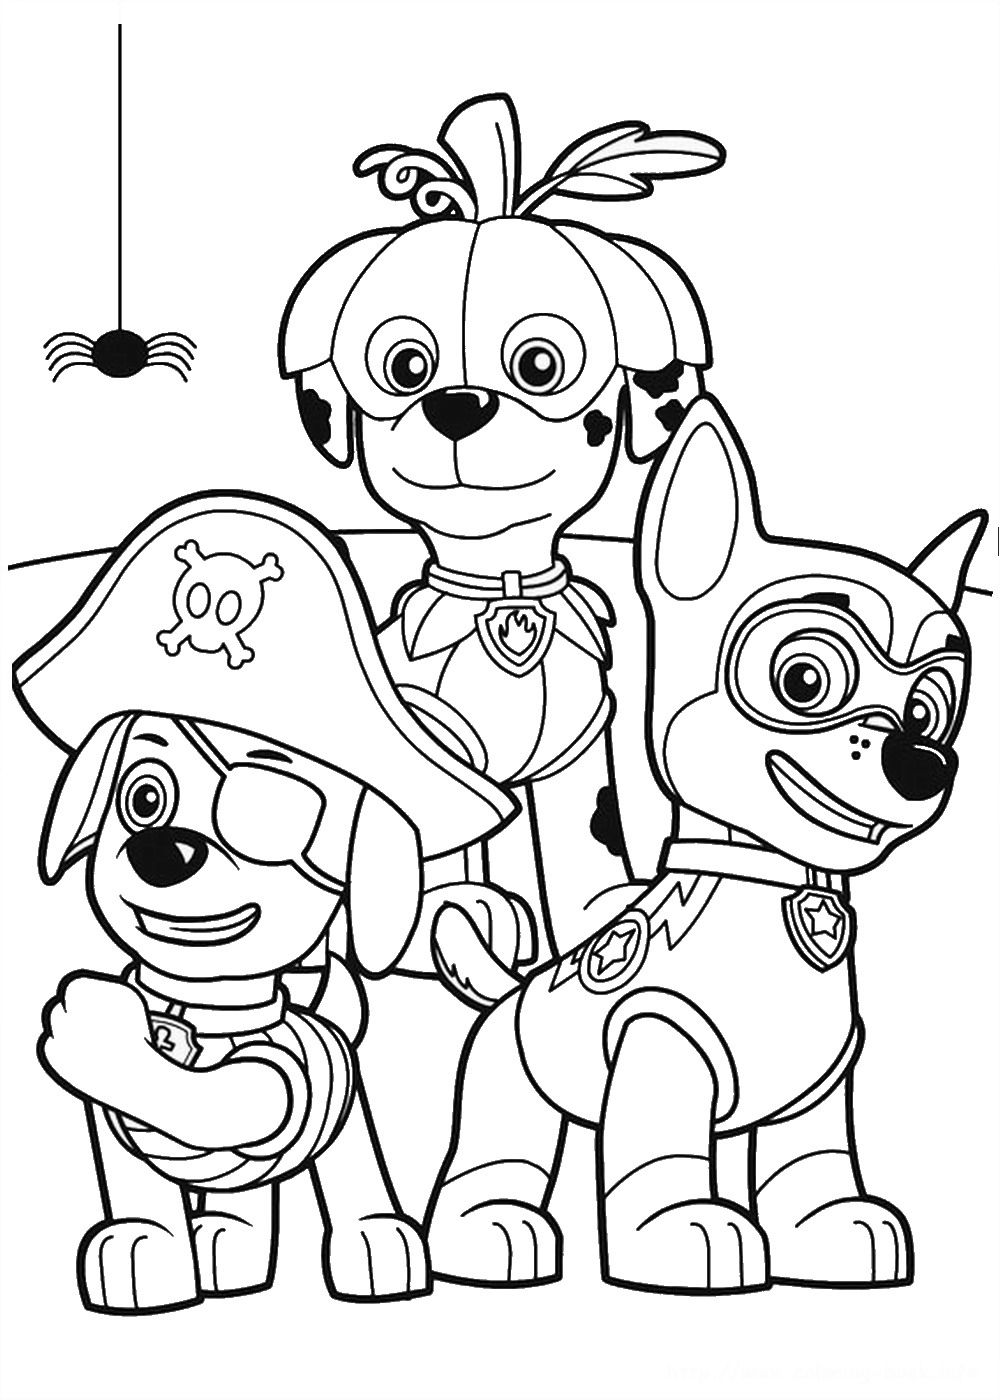 Coloring Pages Paw Patrol : Paw patrol coloring page halloween pinterest